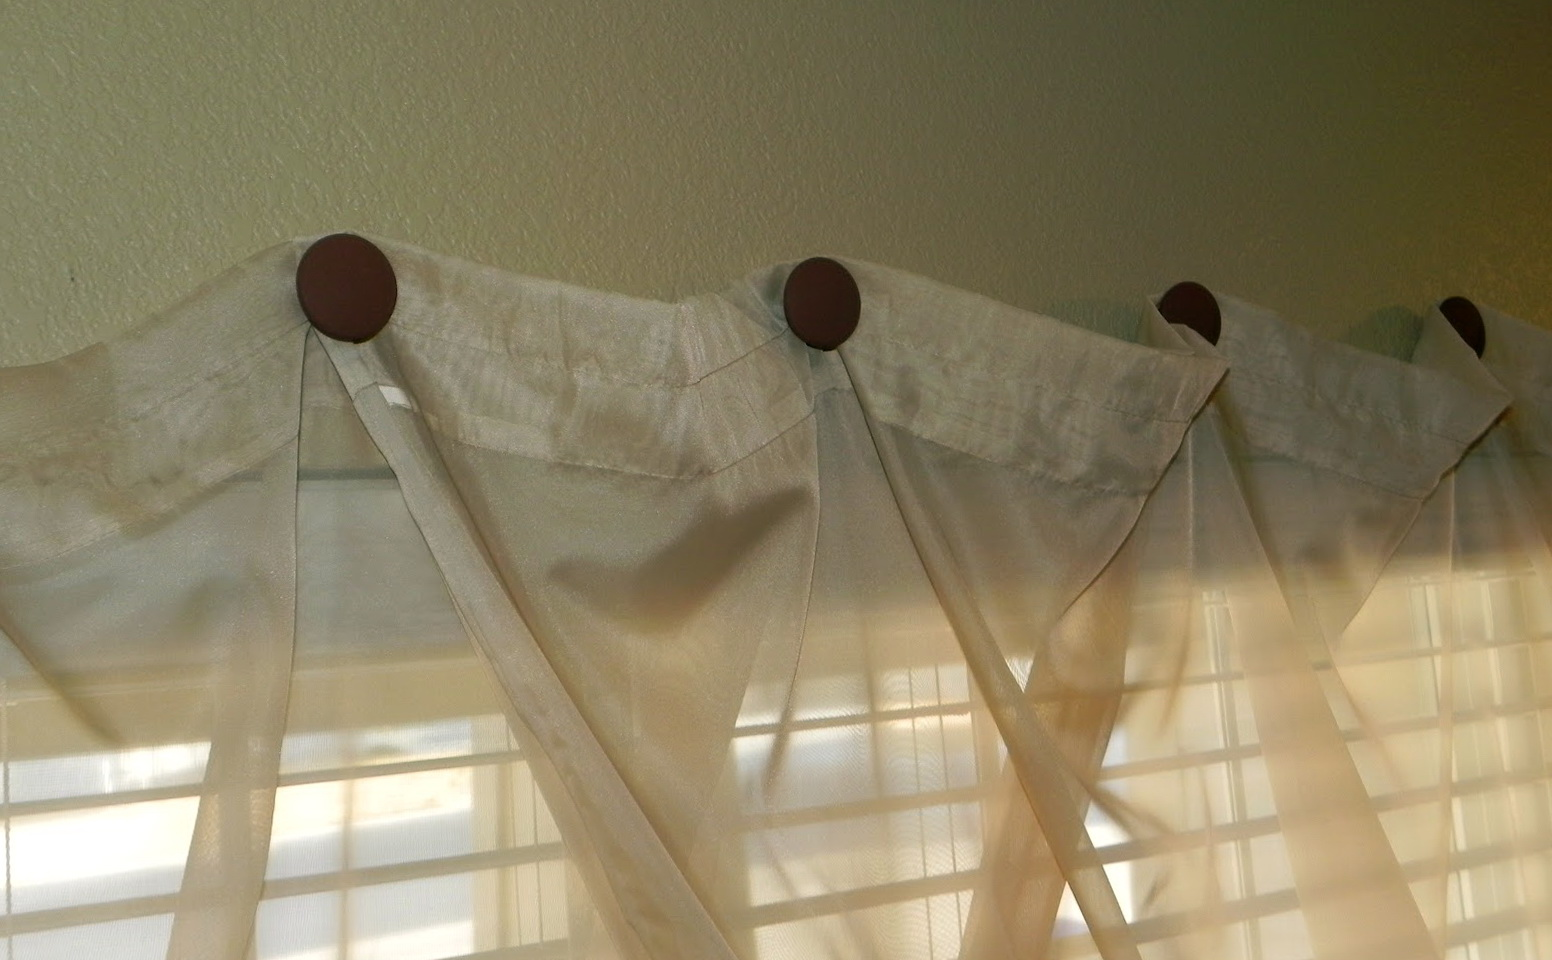 Hang Curtains From Ceiling Without Drilling Pranksenders